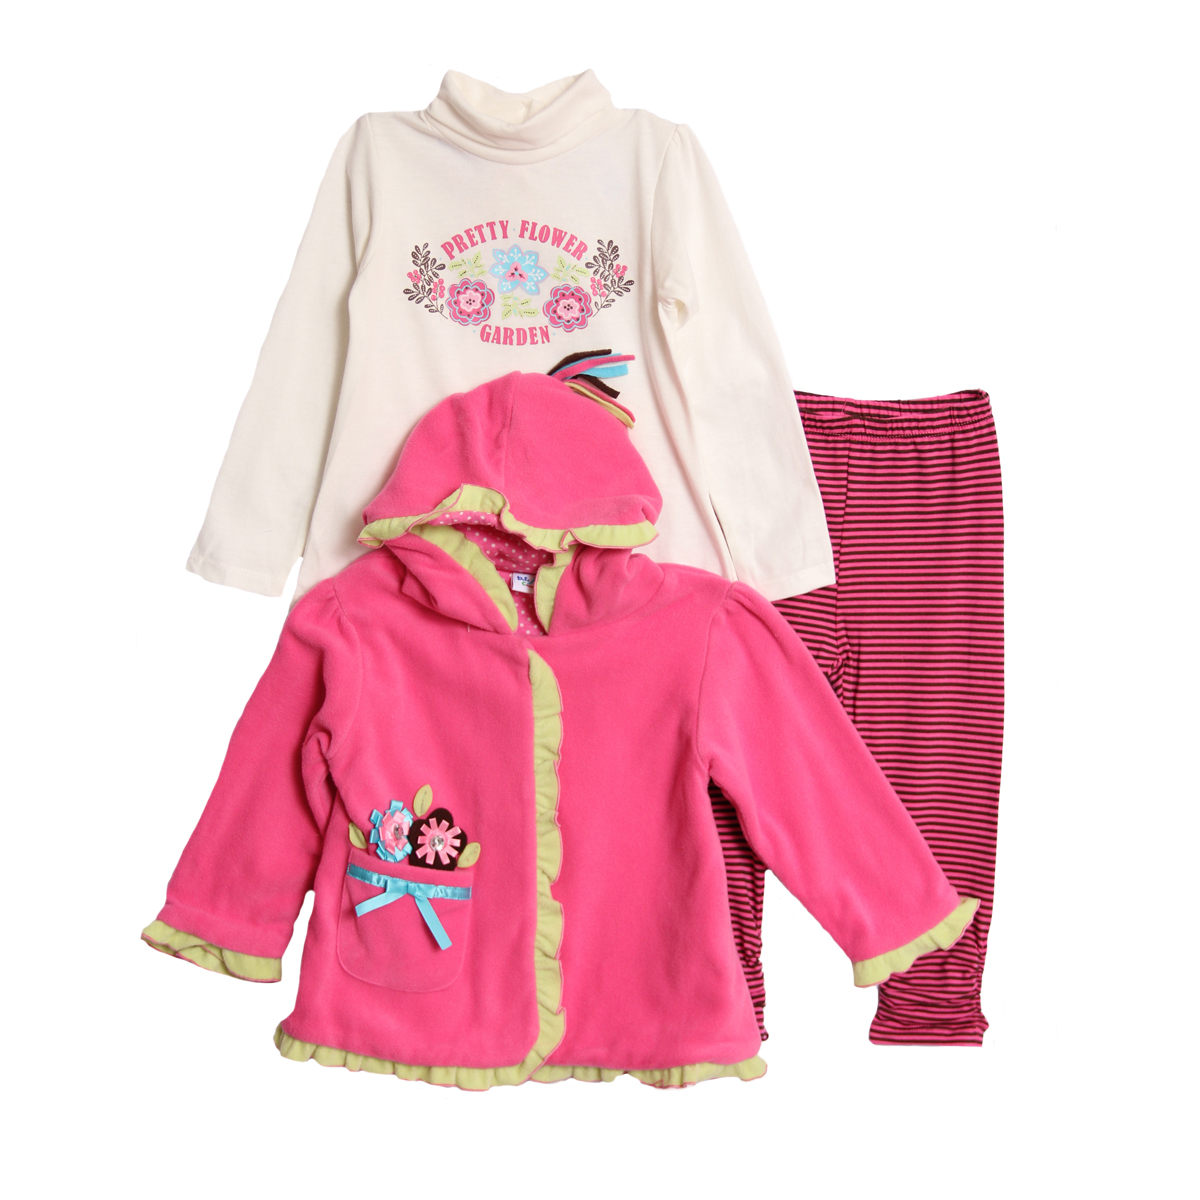 B.T. Kids Infant Baby Girls 3 Piece Pink Polar Fleece Jacket Shirt Leggings Set at Sears.com